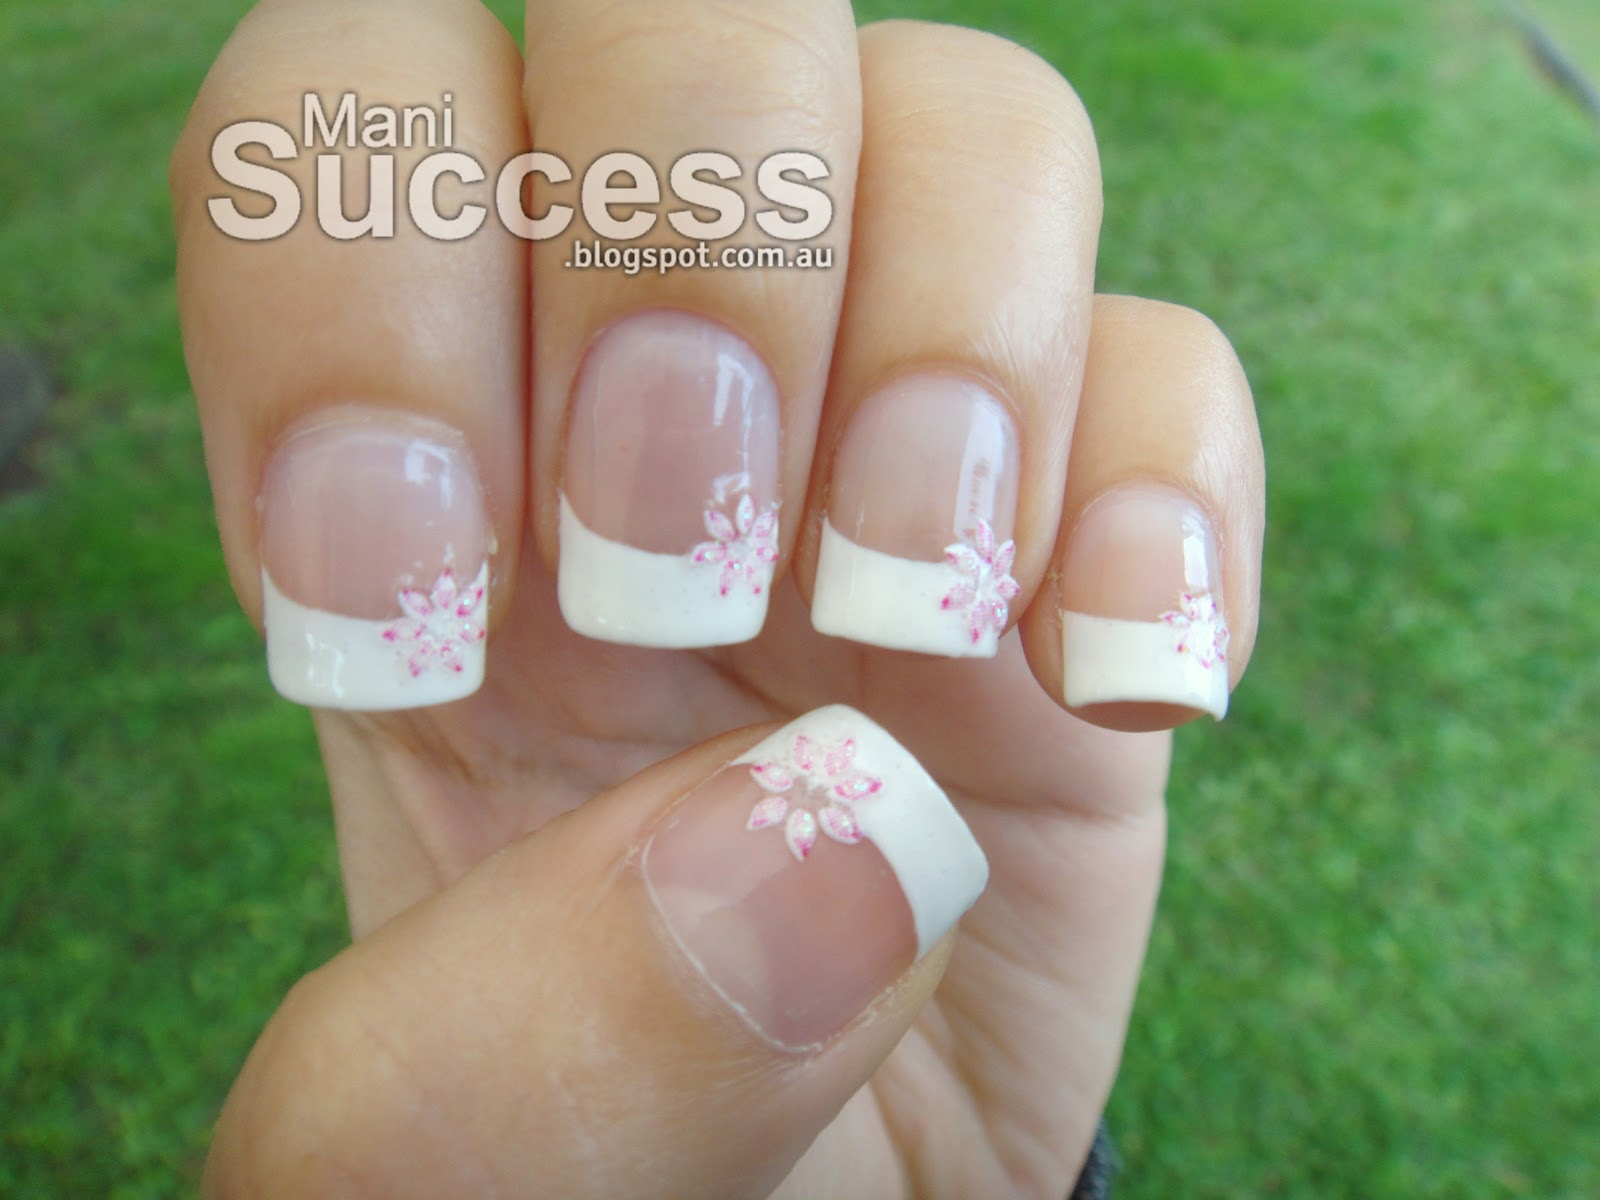 Mani Success Simple White Tip Nails Nail Art Design Ideas Collection